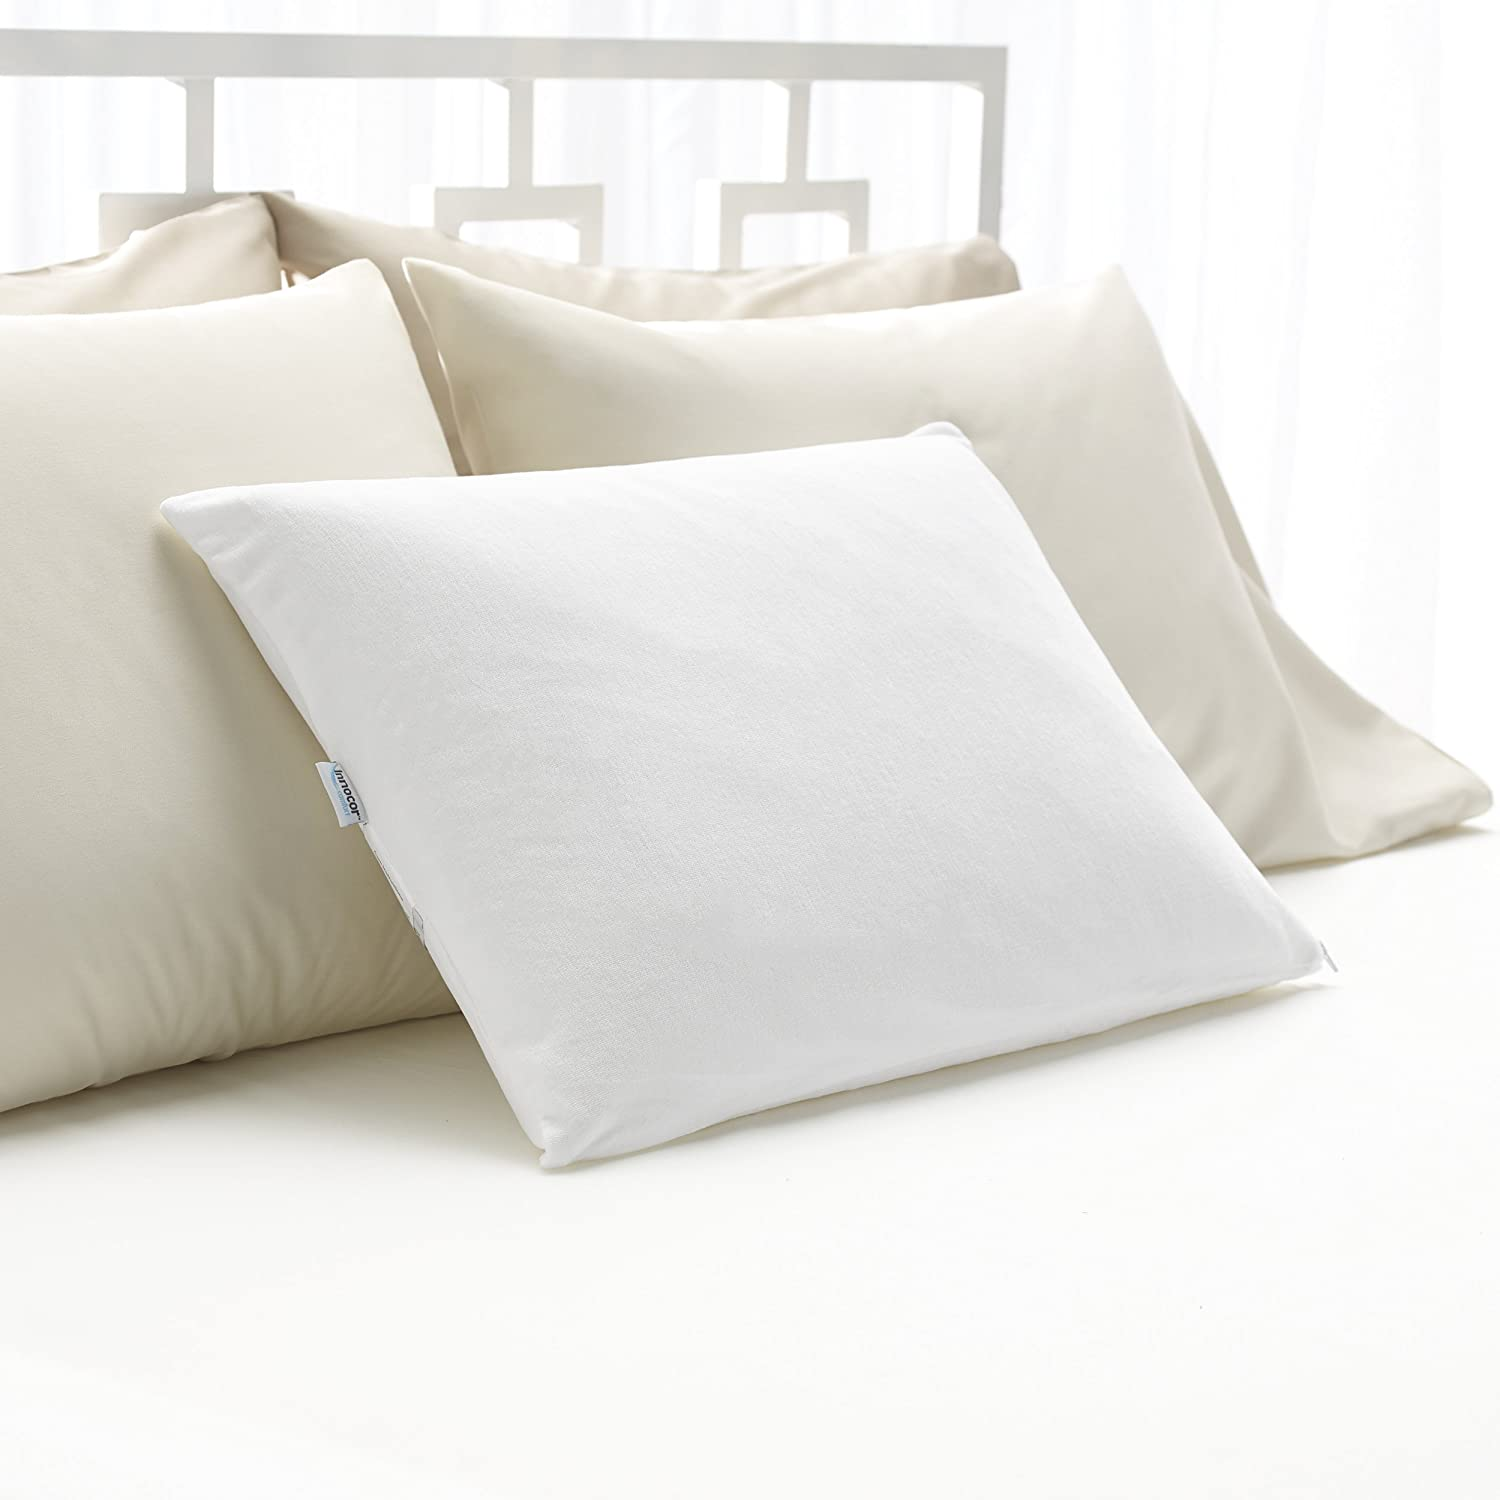 Sleep Innovations Memory Foam Classic Pillow, Standard